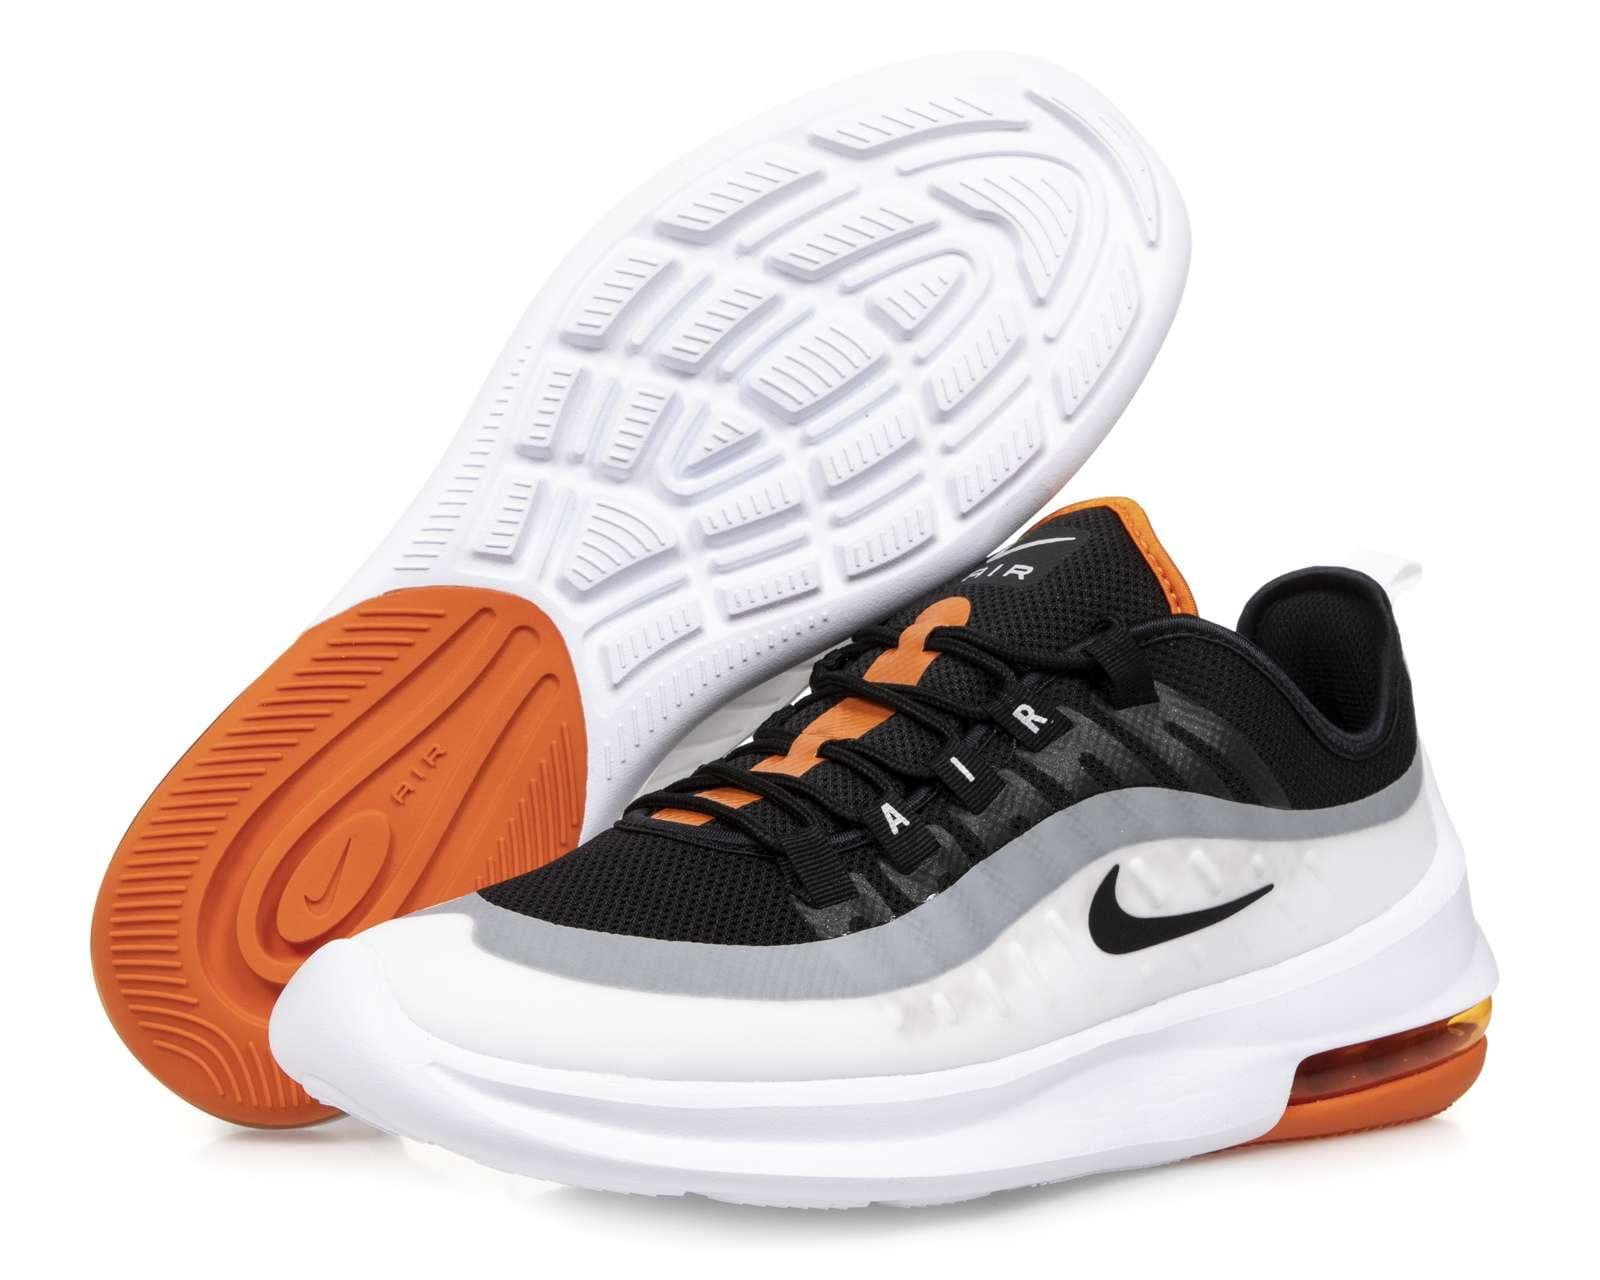 Tenis Nike Air Max Axis color Blanco para Hombre